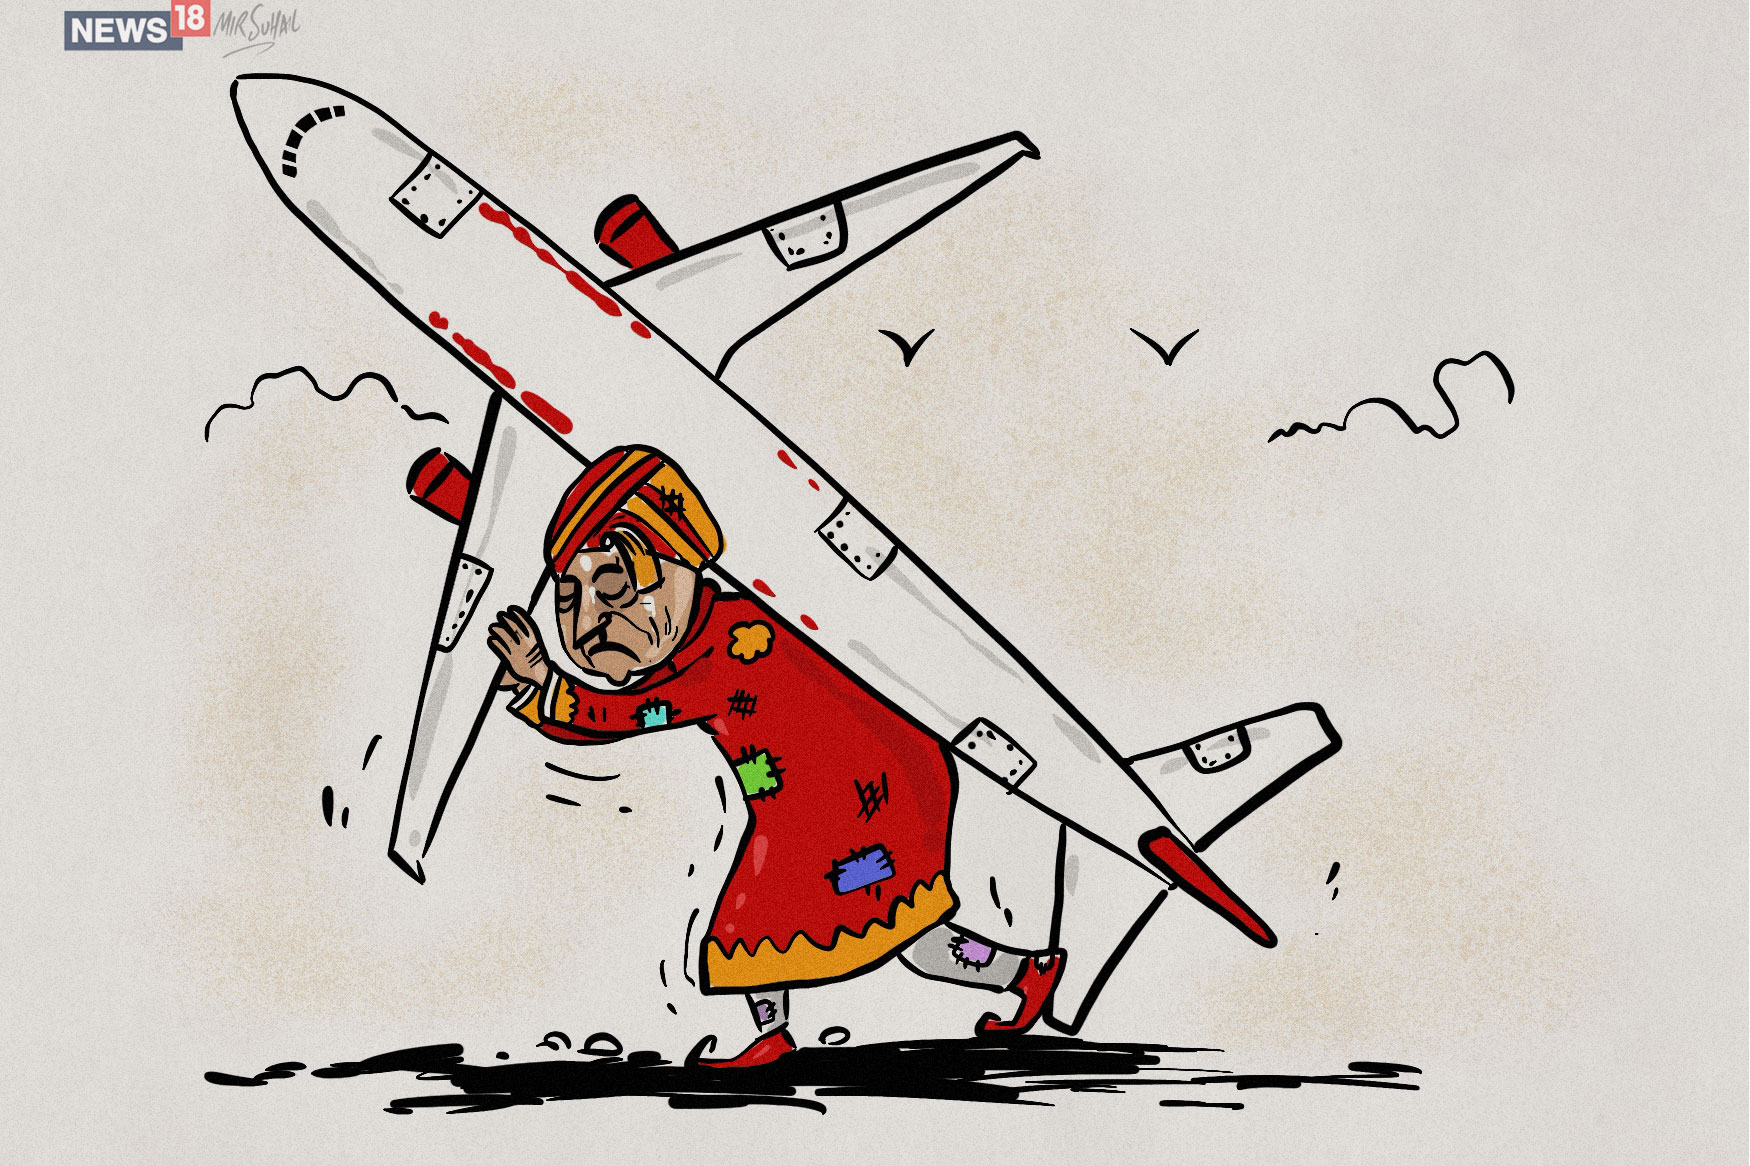 On the Market Yet Again, Chances of Selling Cash-guzzling Air India May be Hit as Govt Restricts Foreign Airli